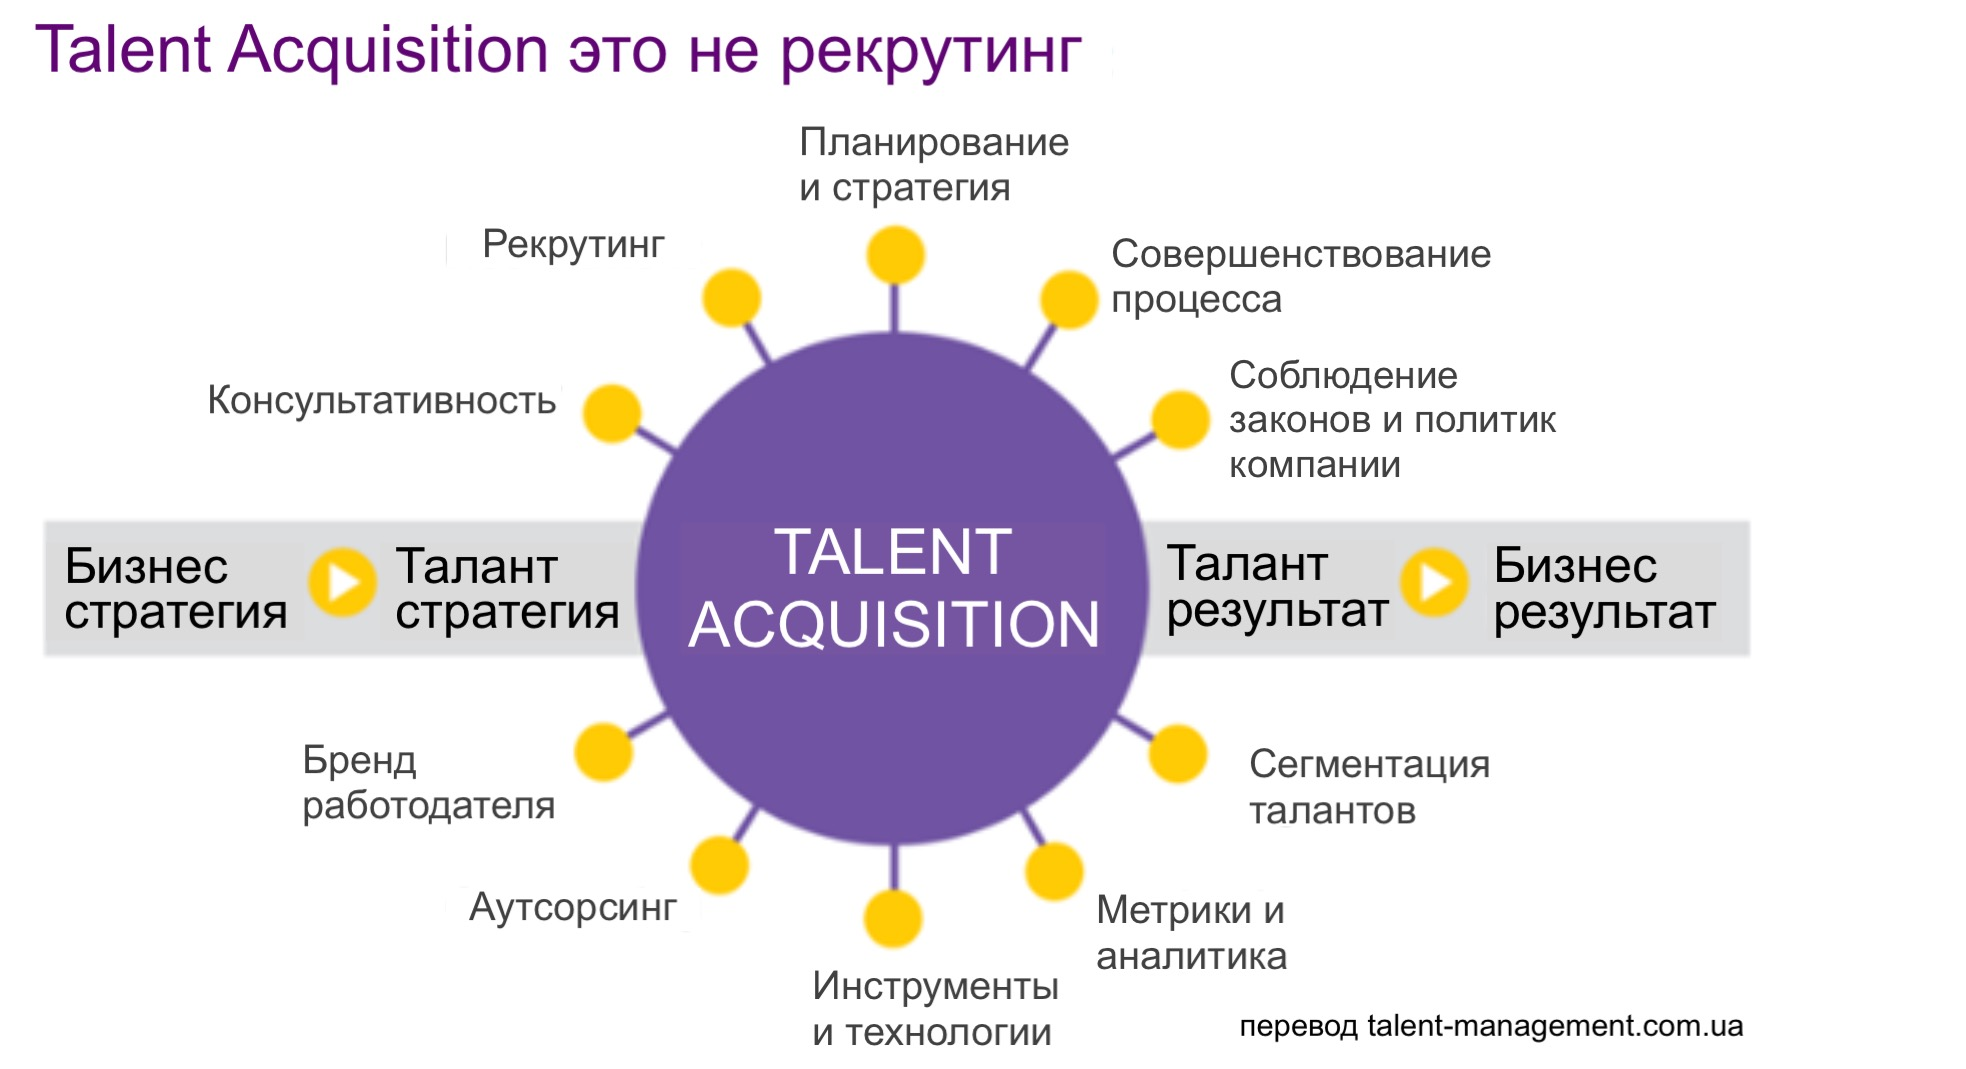 Talent Acquisition